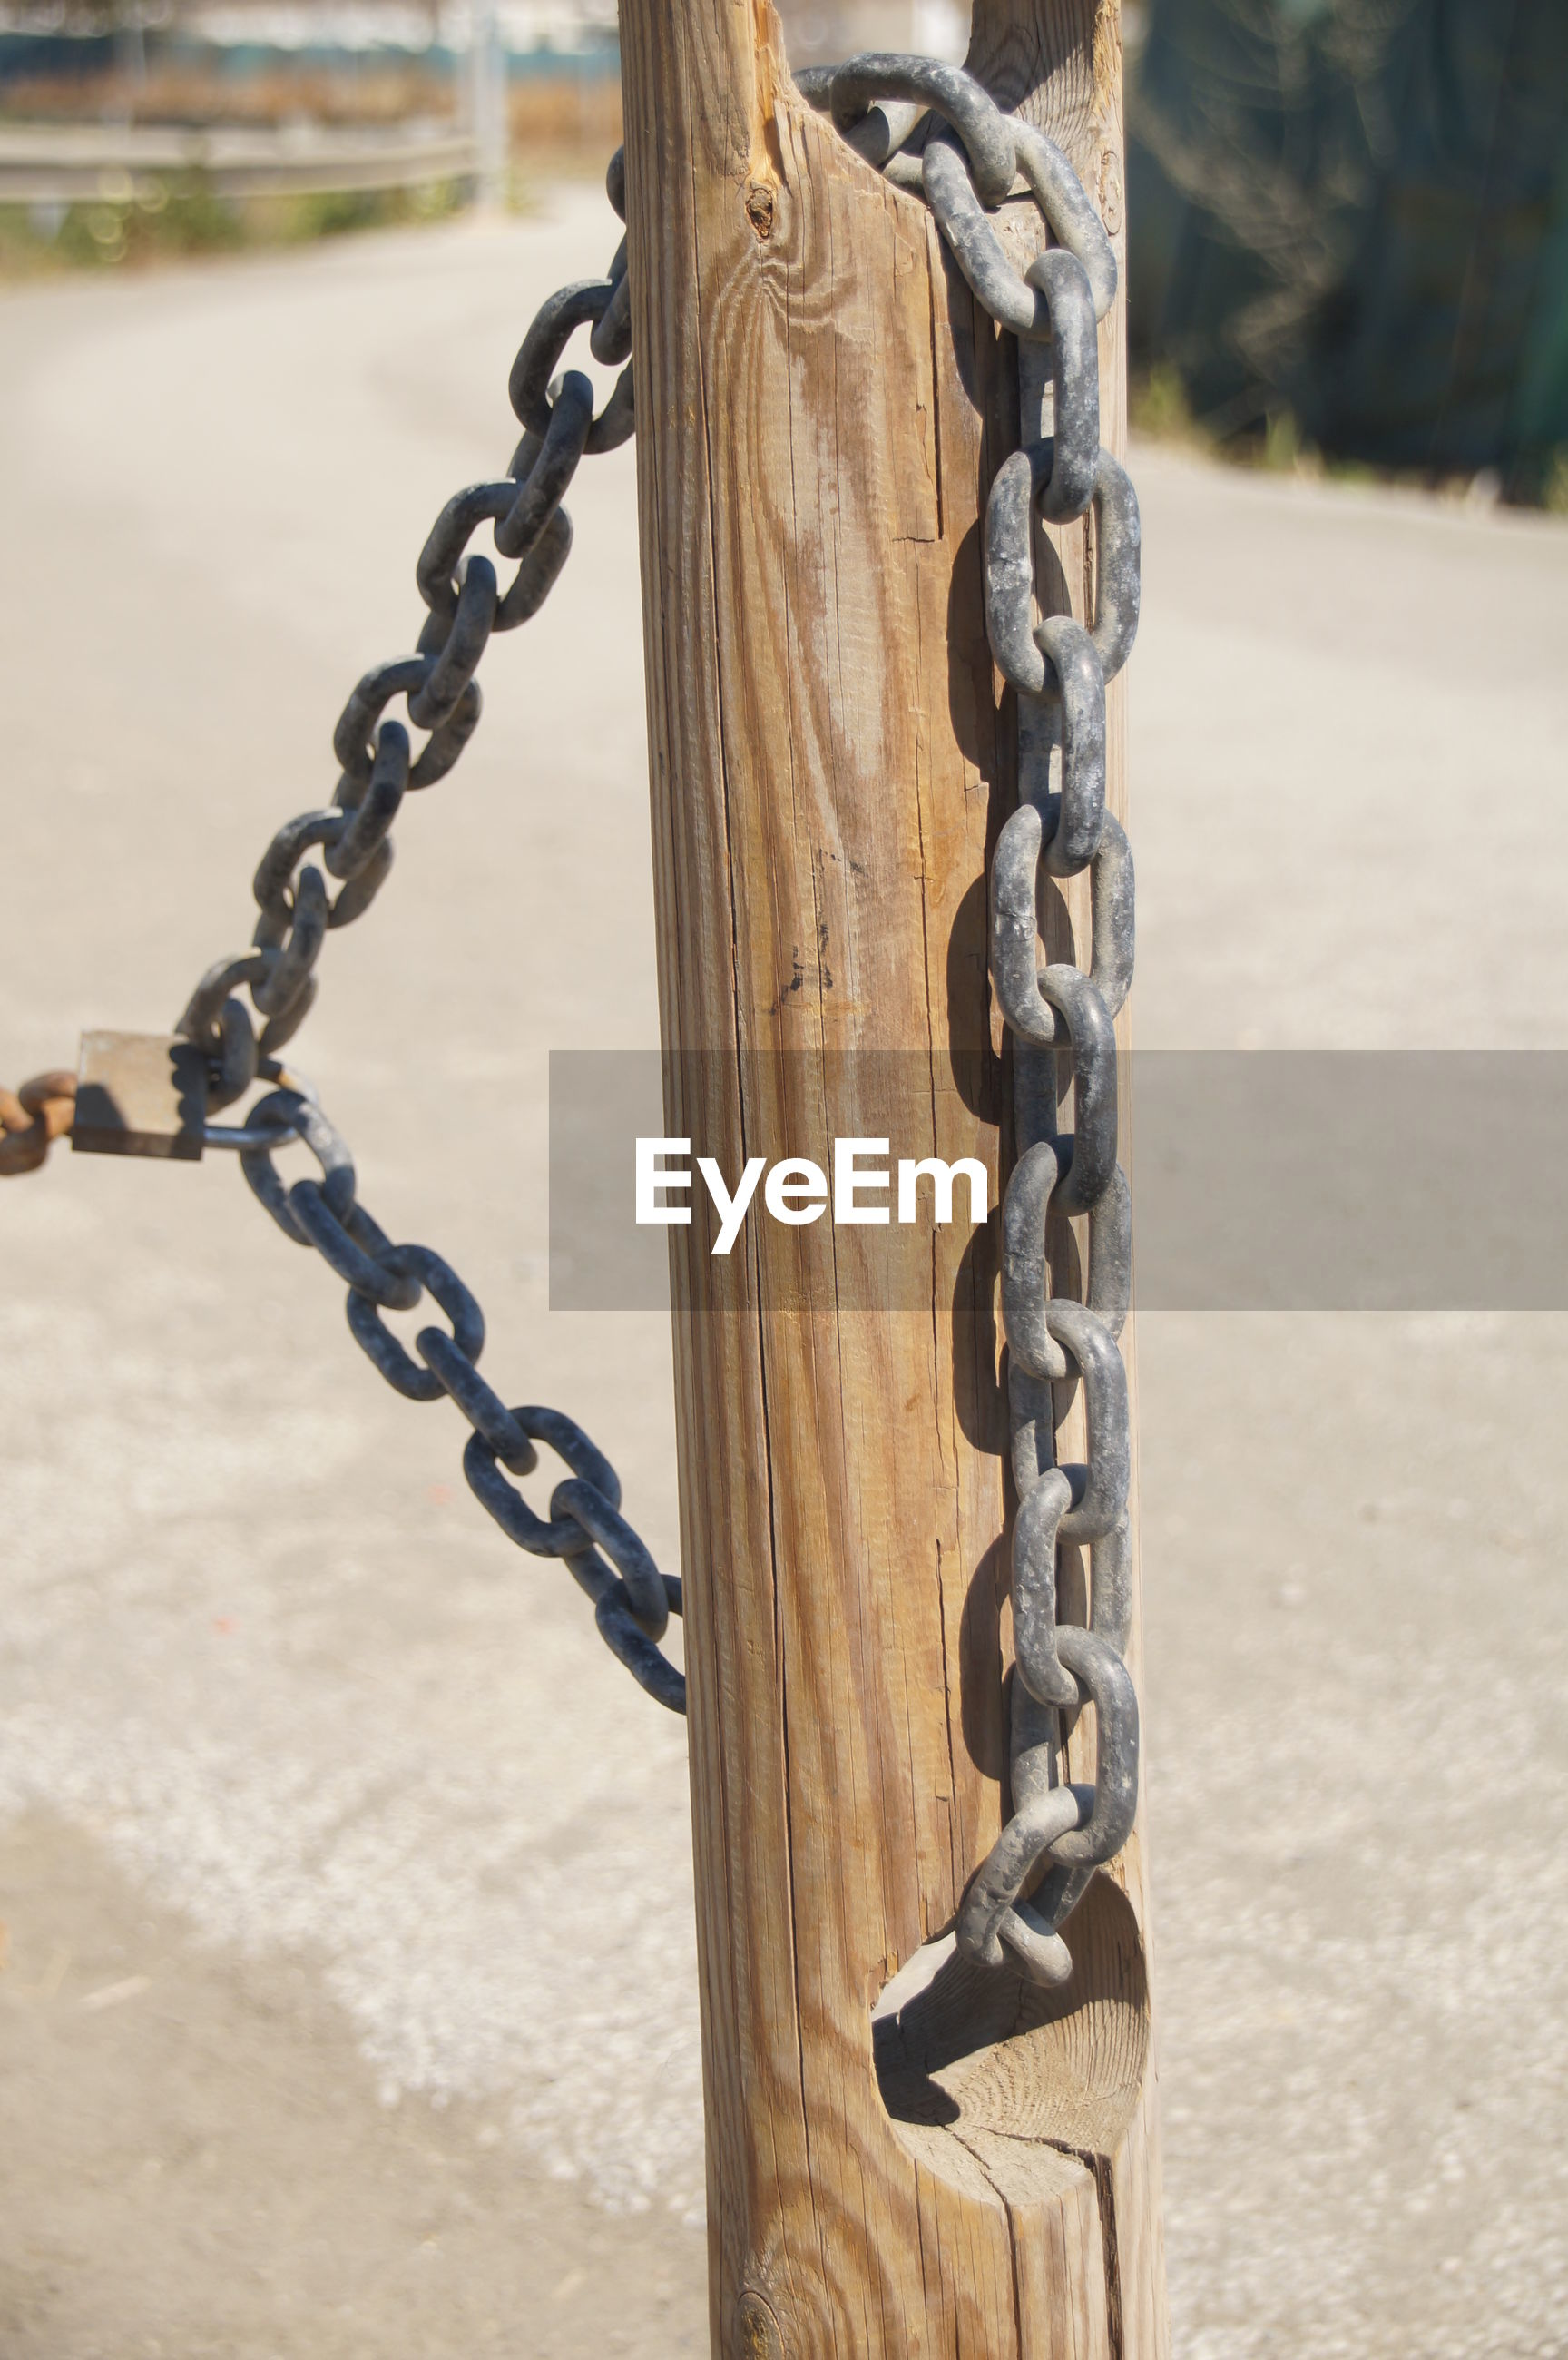 CLOSE-UP OF CHAIN HANGING ON SWING